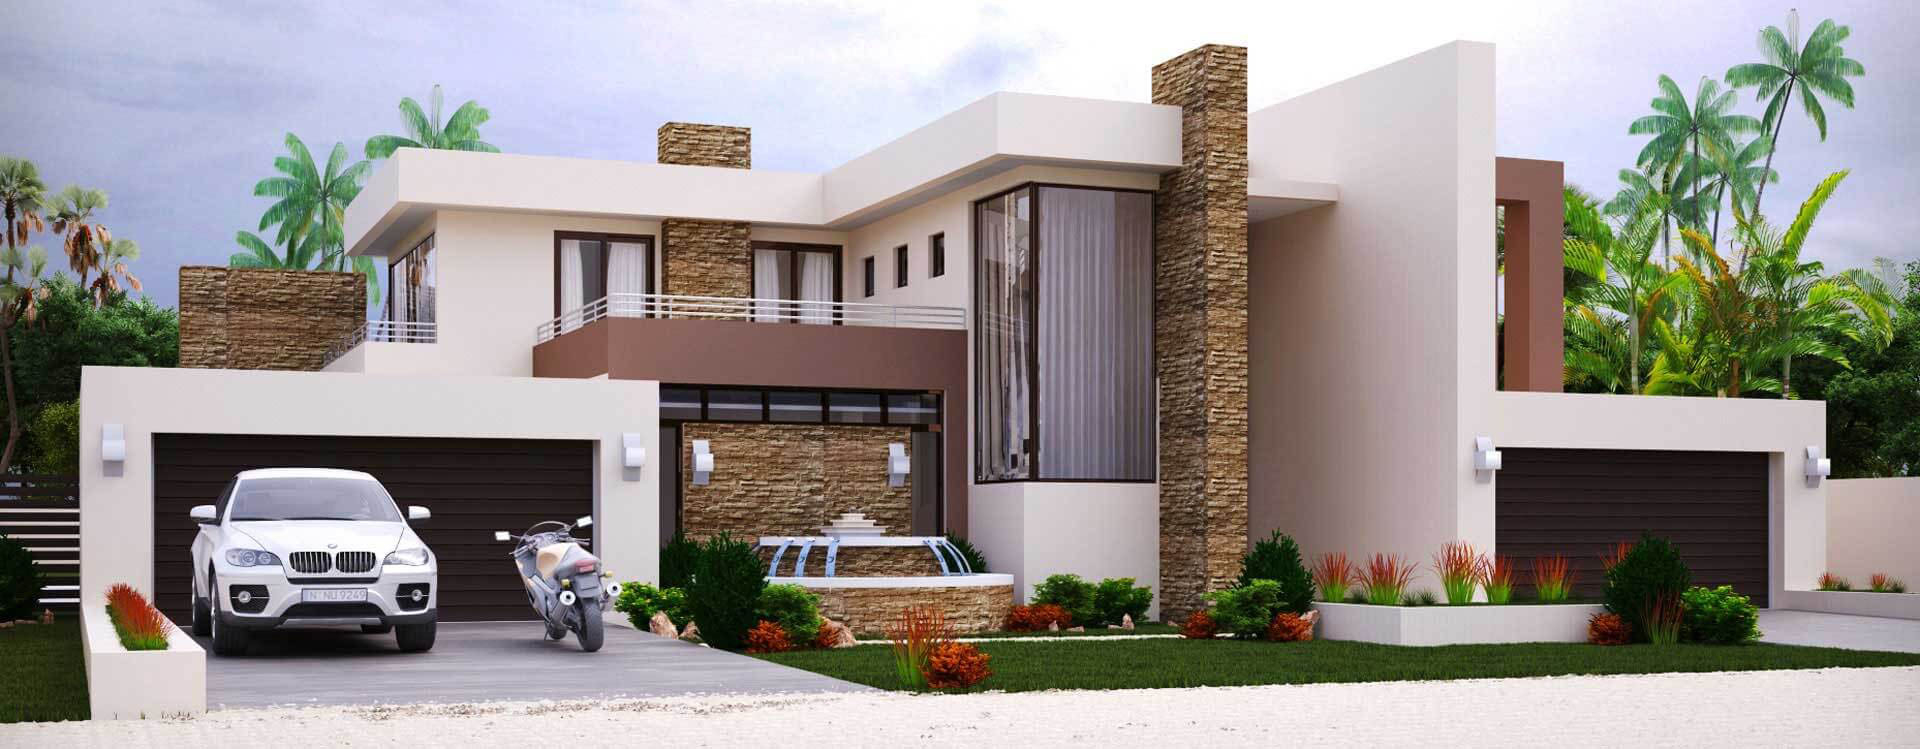 19.SIMPHOME.COM 4 bedroom house plan for sale south african designs